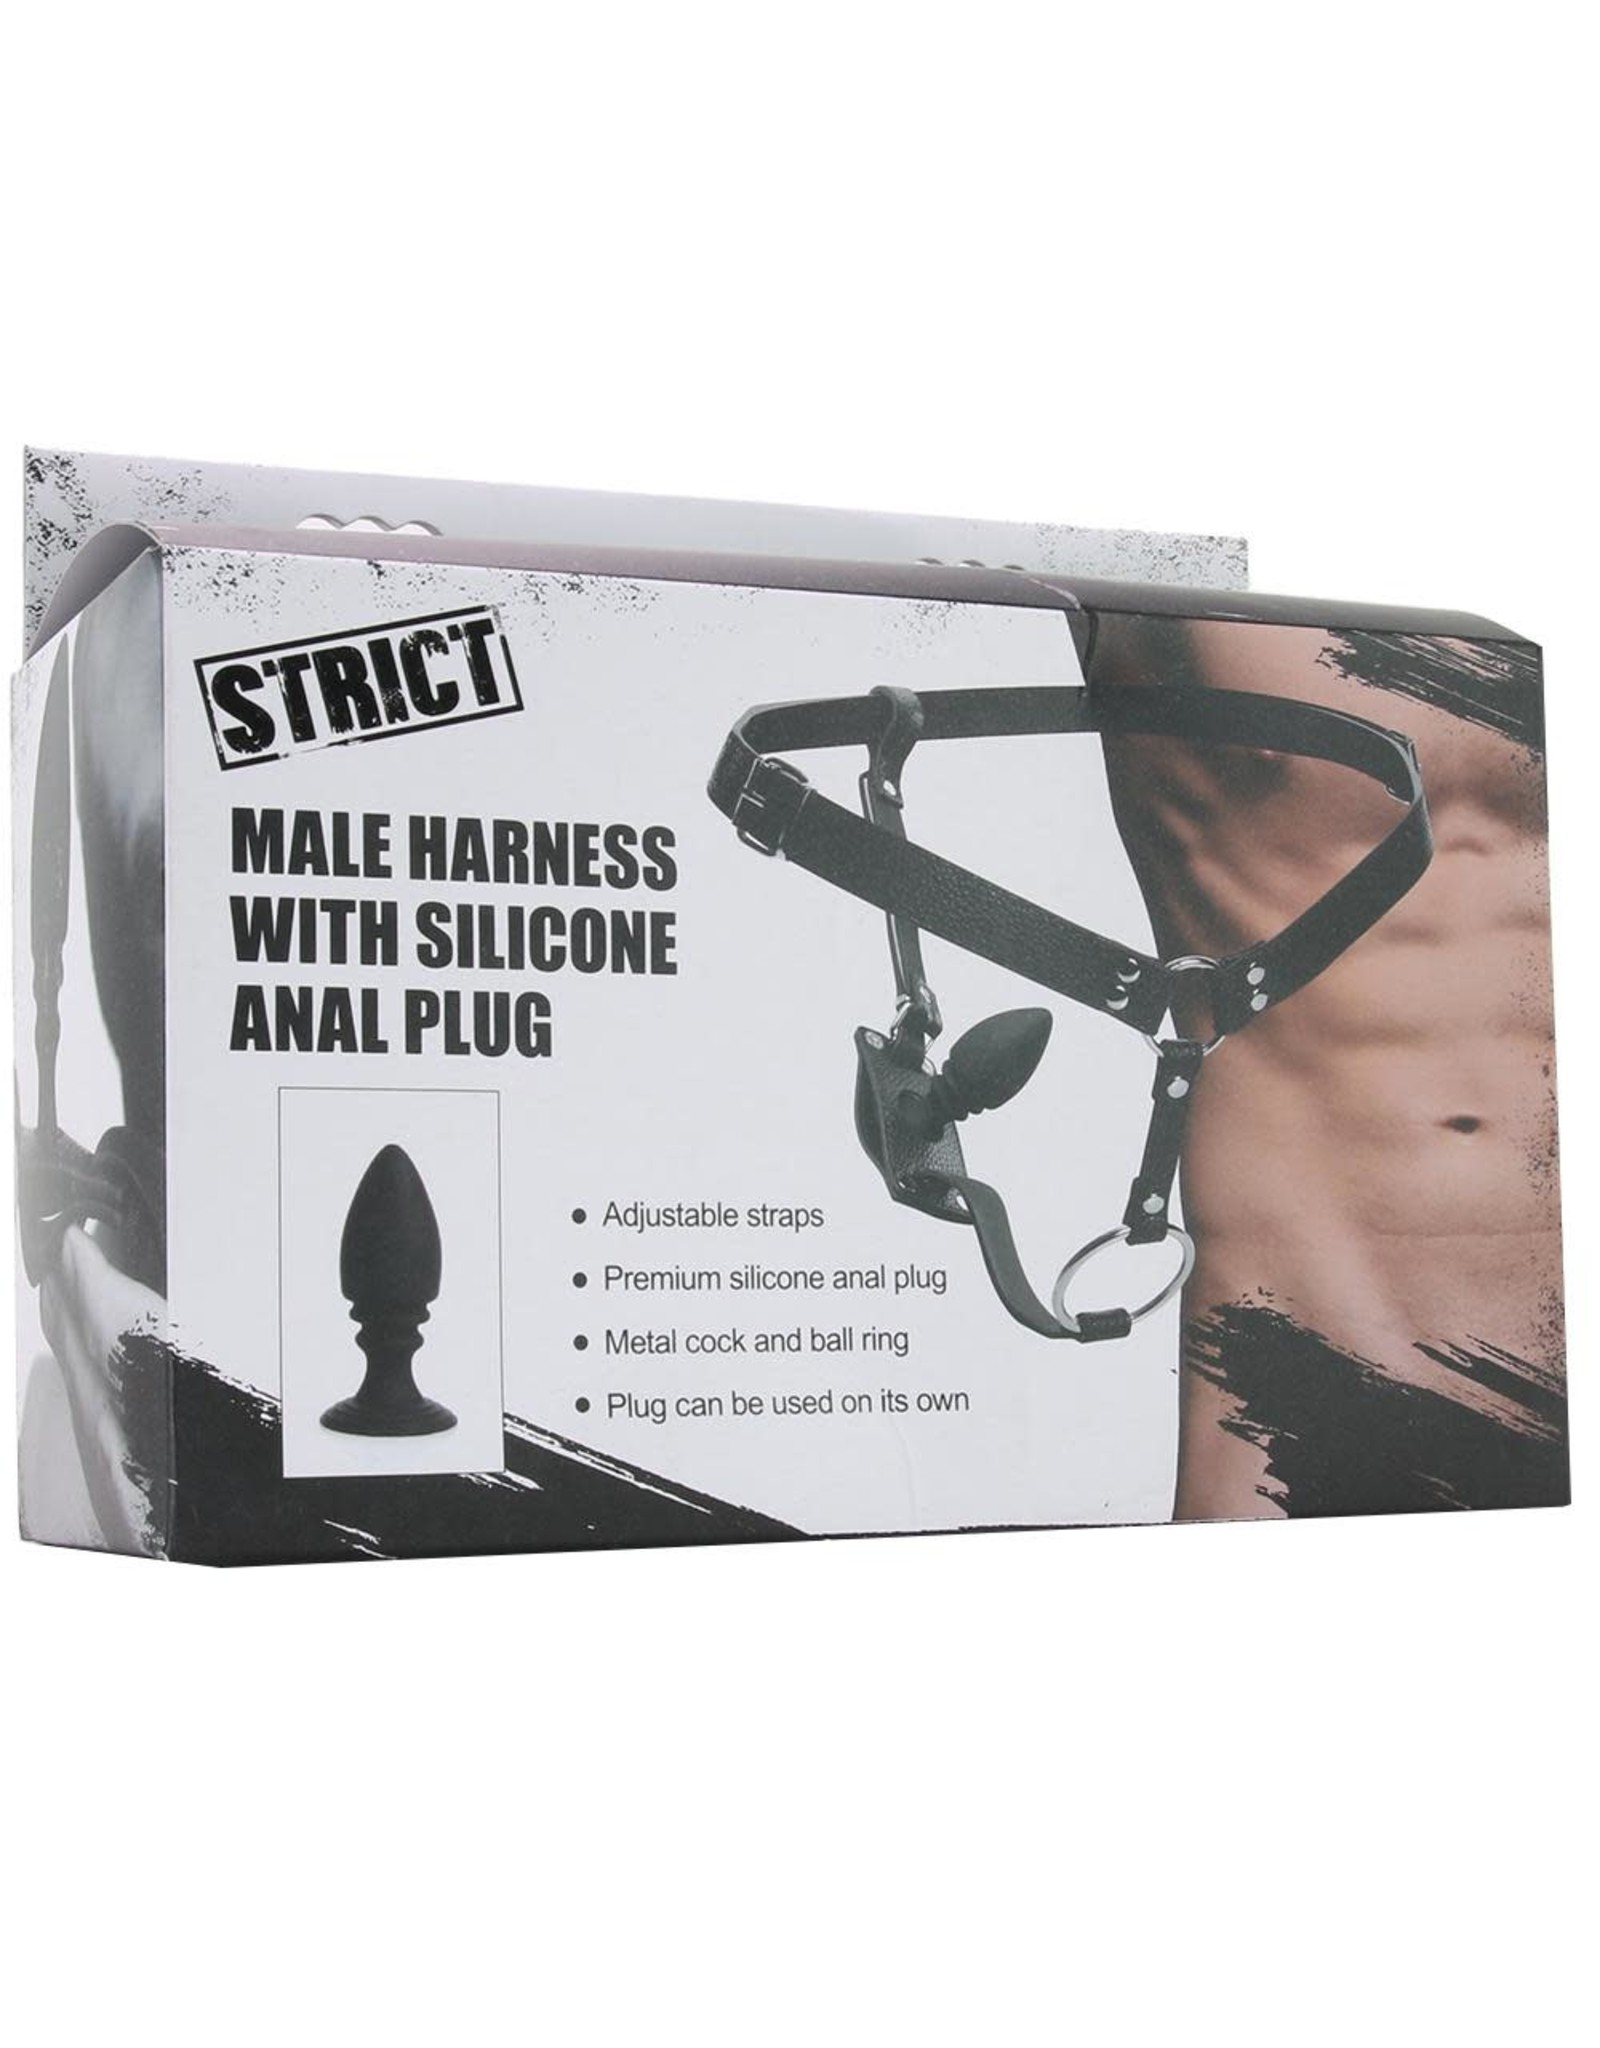 Strict - Male Harness With Silicone Anal Plug